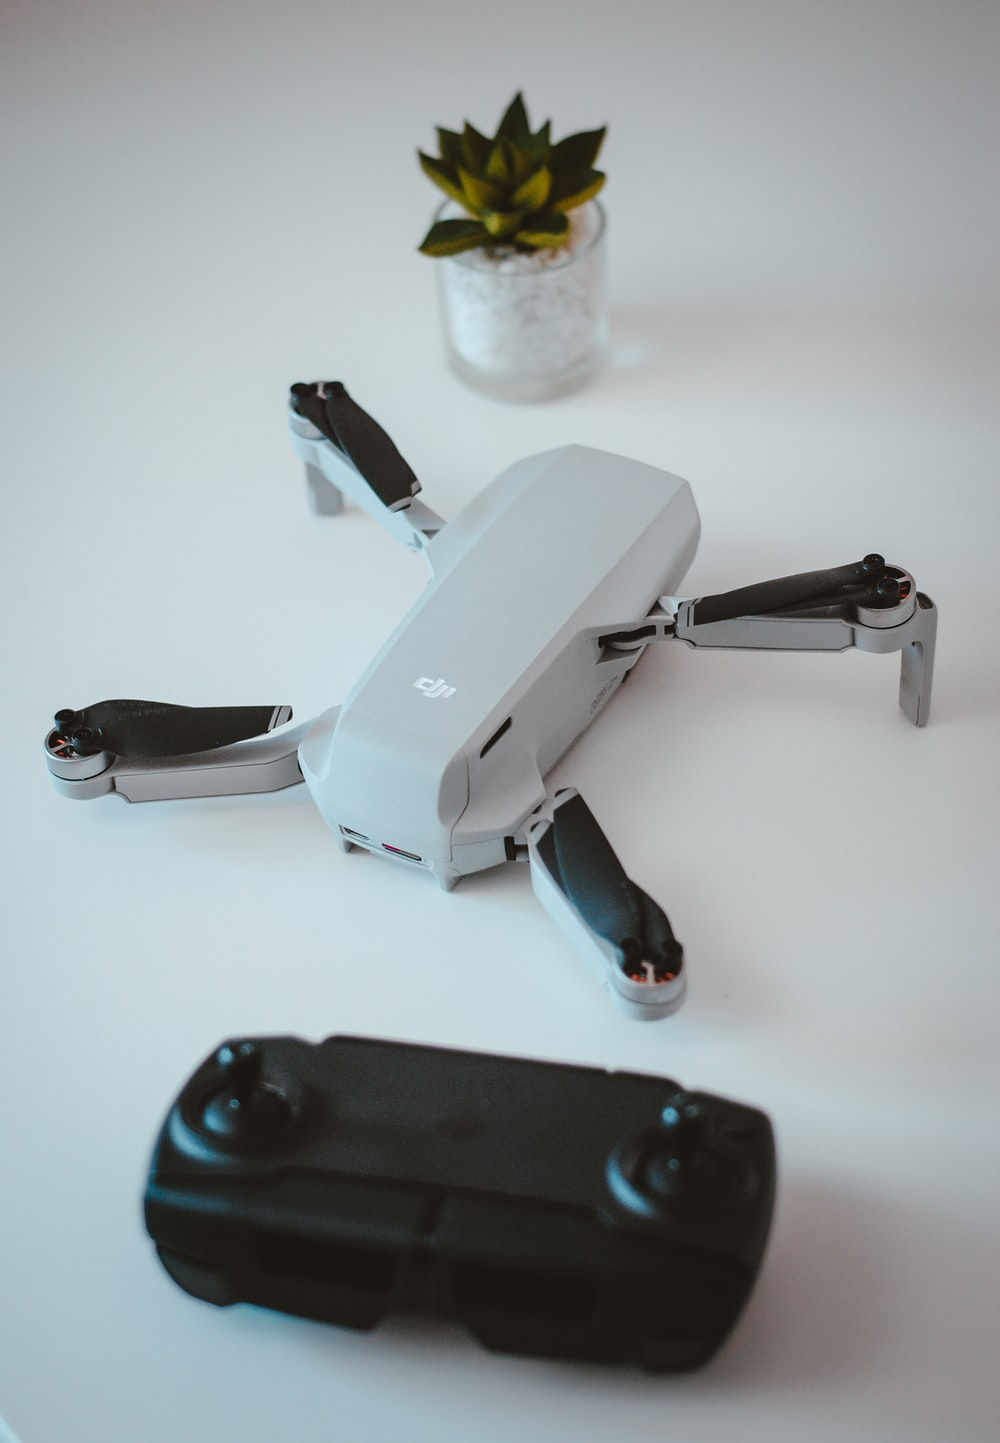 white and black quadcopter drone